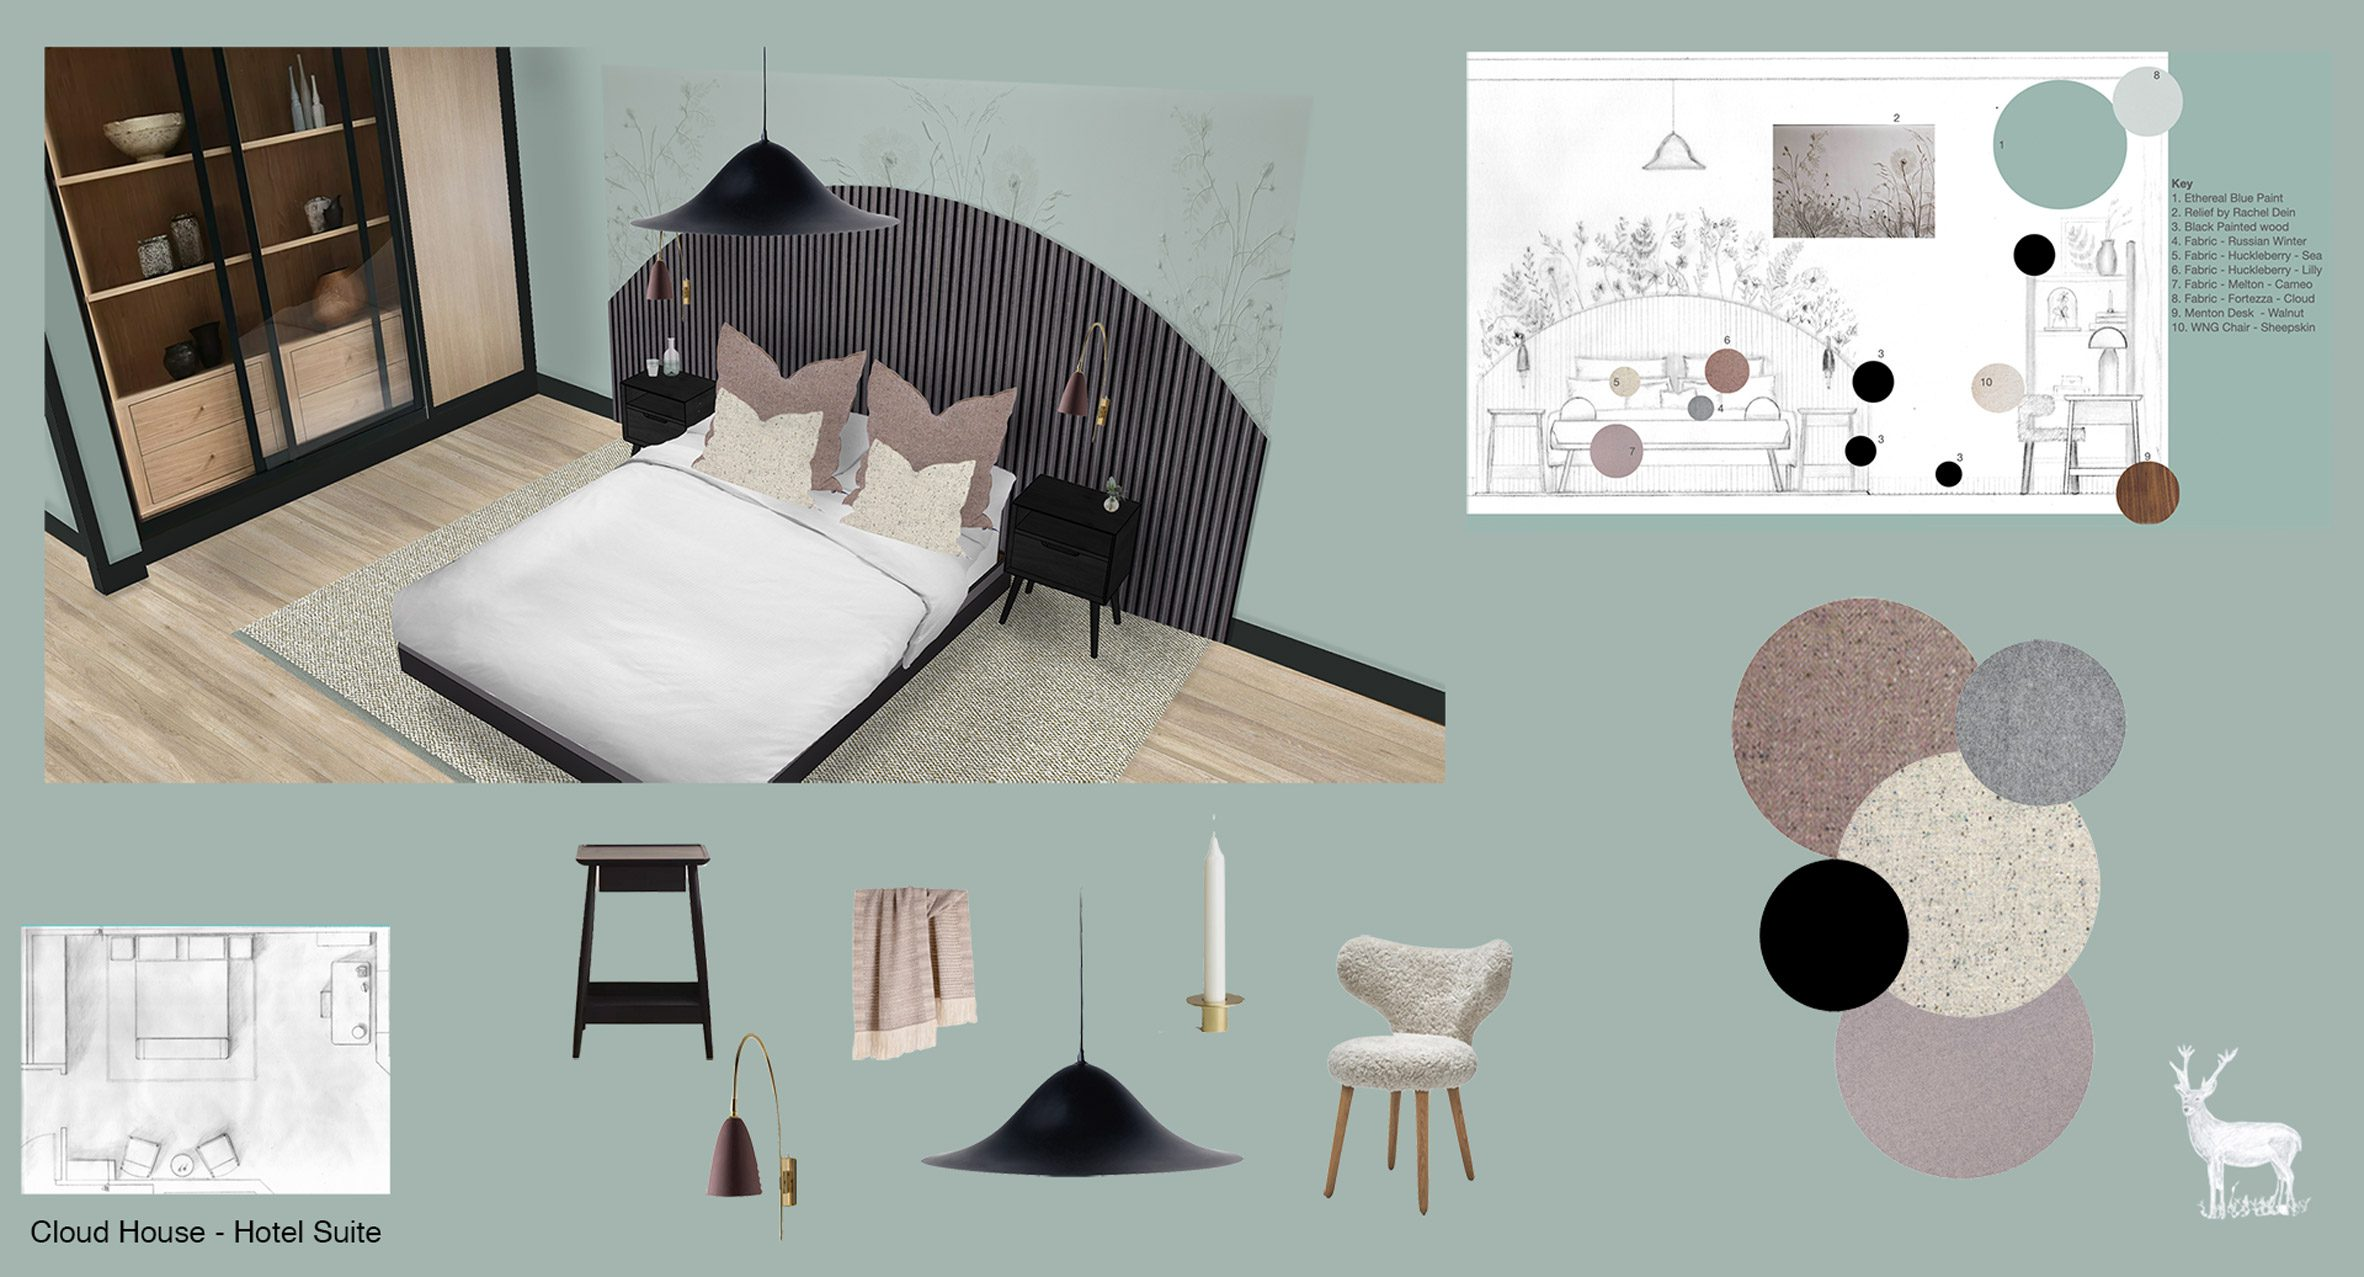 A visualisation of a hotel room inspired by nature